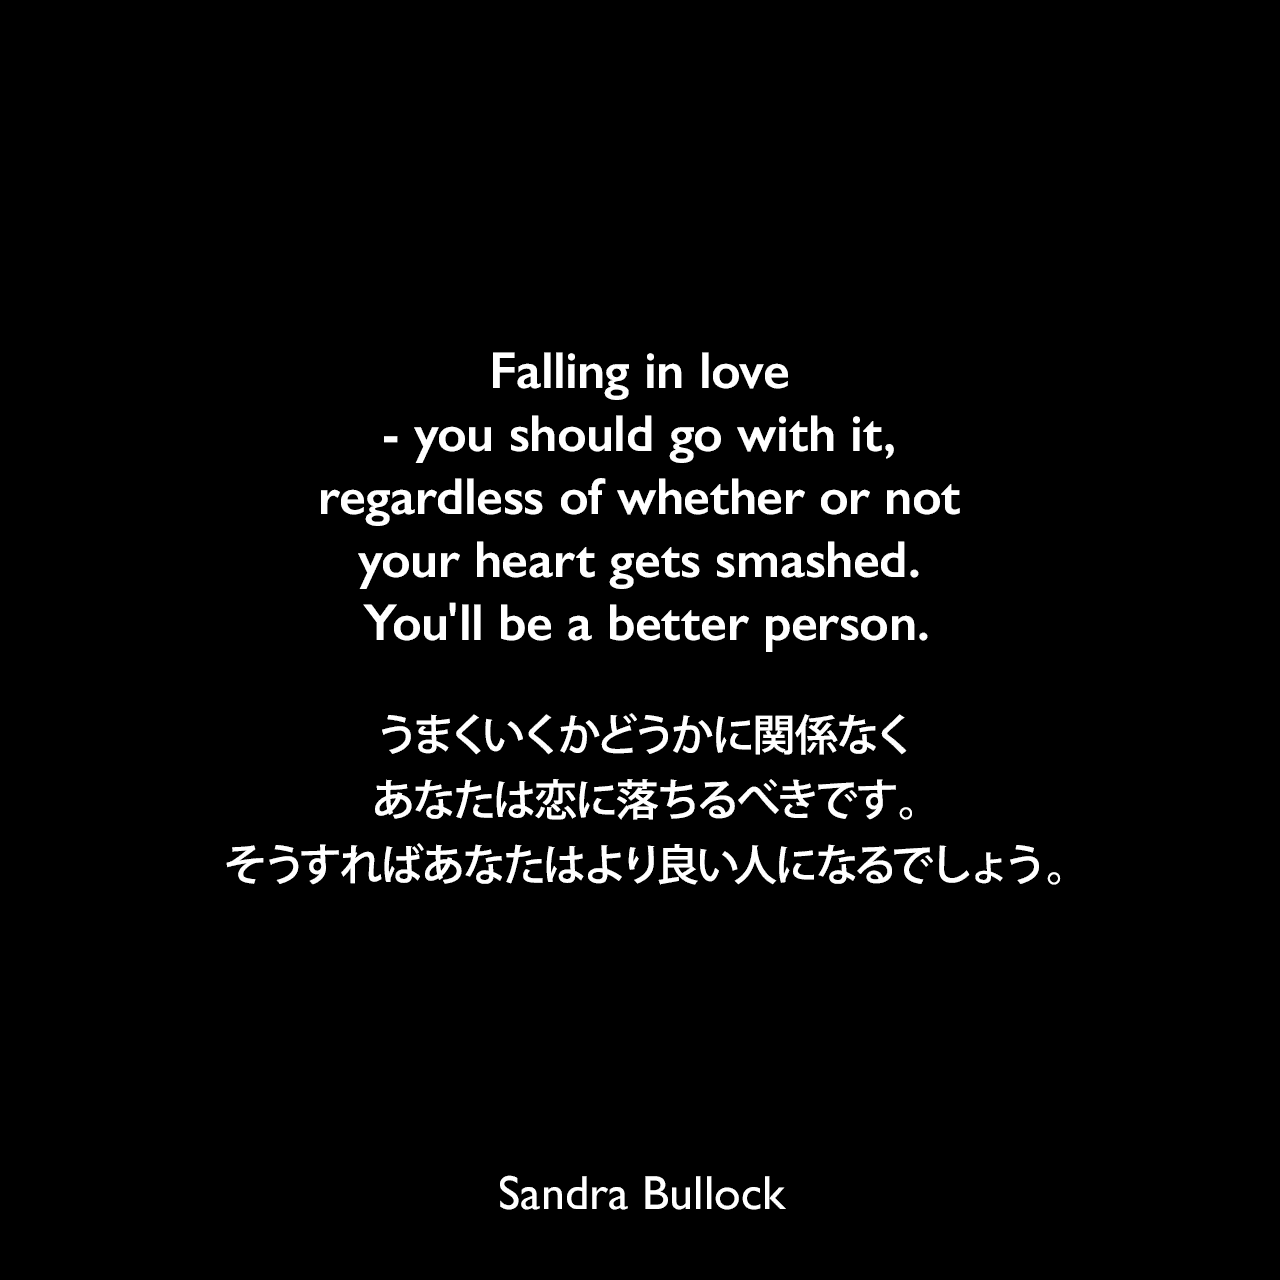 Falling in love - you should go with it, regardless of whether or not your heart gets smashed. You'll be a better person.うまくいくかどうかに関係なくあなたは恋に落ちるべきです。そうすればあなたはより良い人になるでしょう。